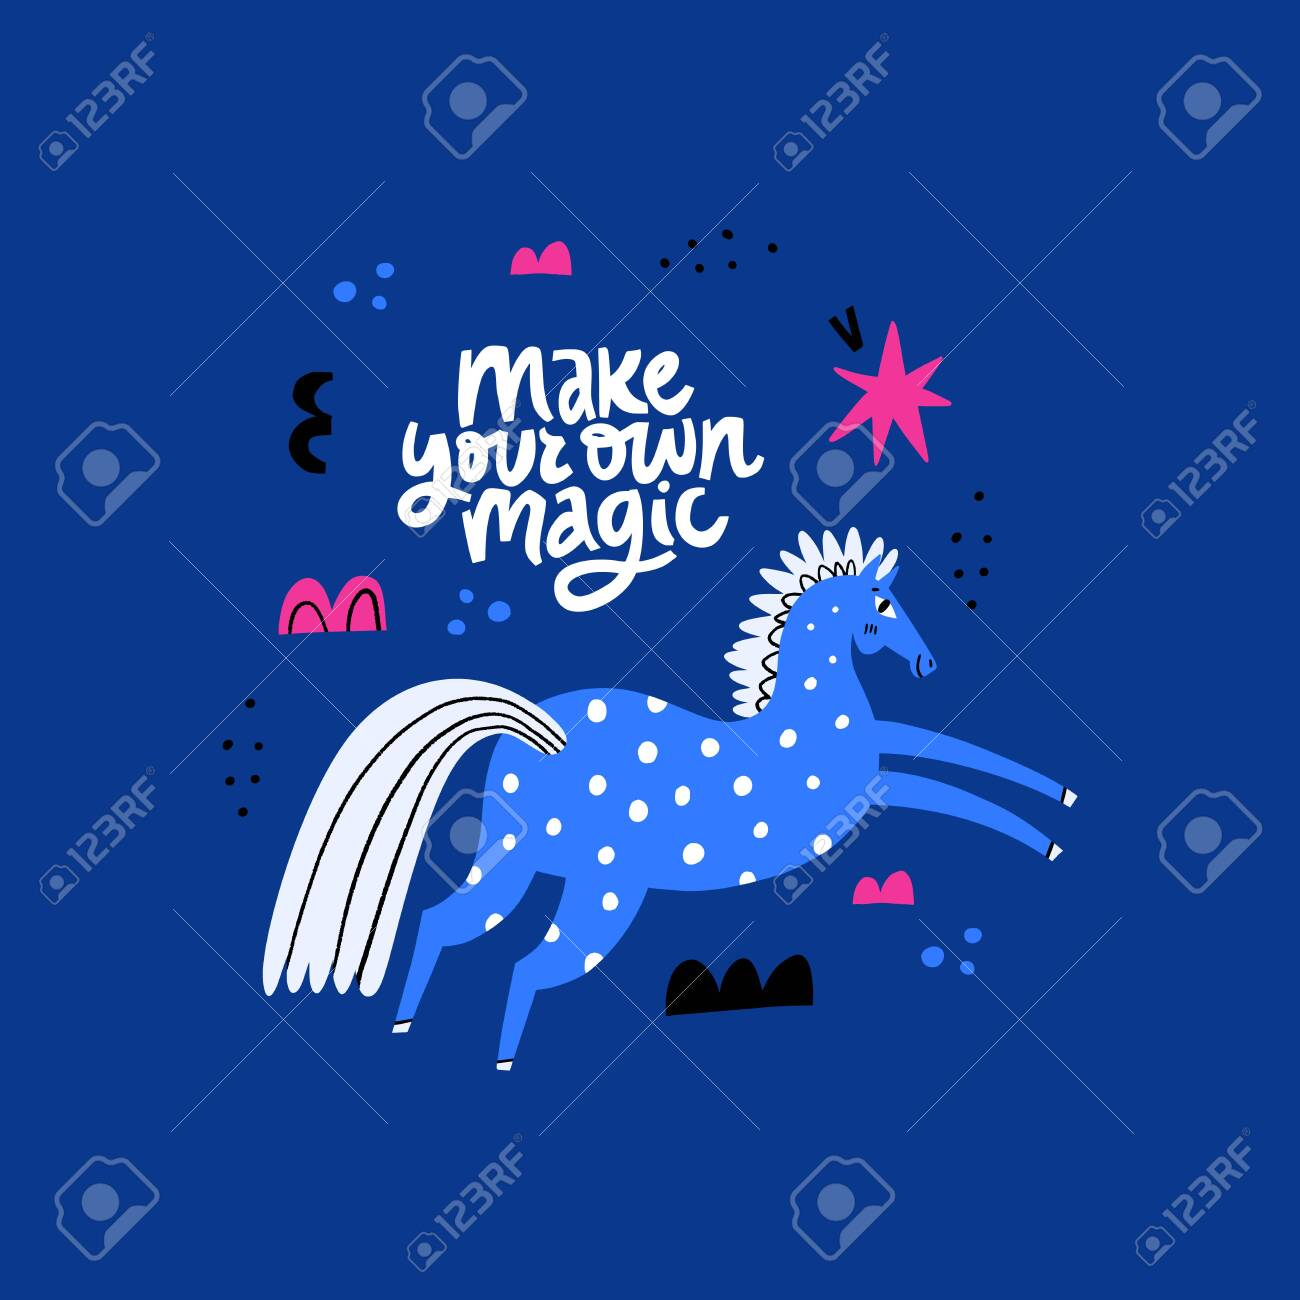 Blue Horse Scandinavian Style Drawing Stallion Galloping Jumping Royalty Free Cliparts Vectors And Stock Illustration Image 140405906